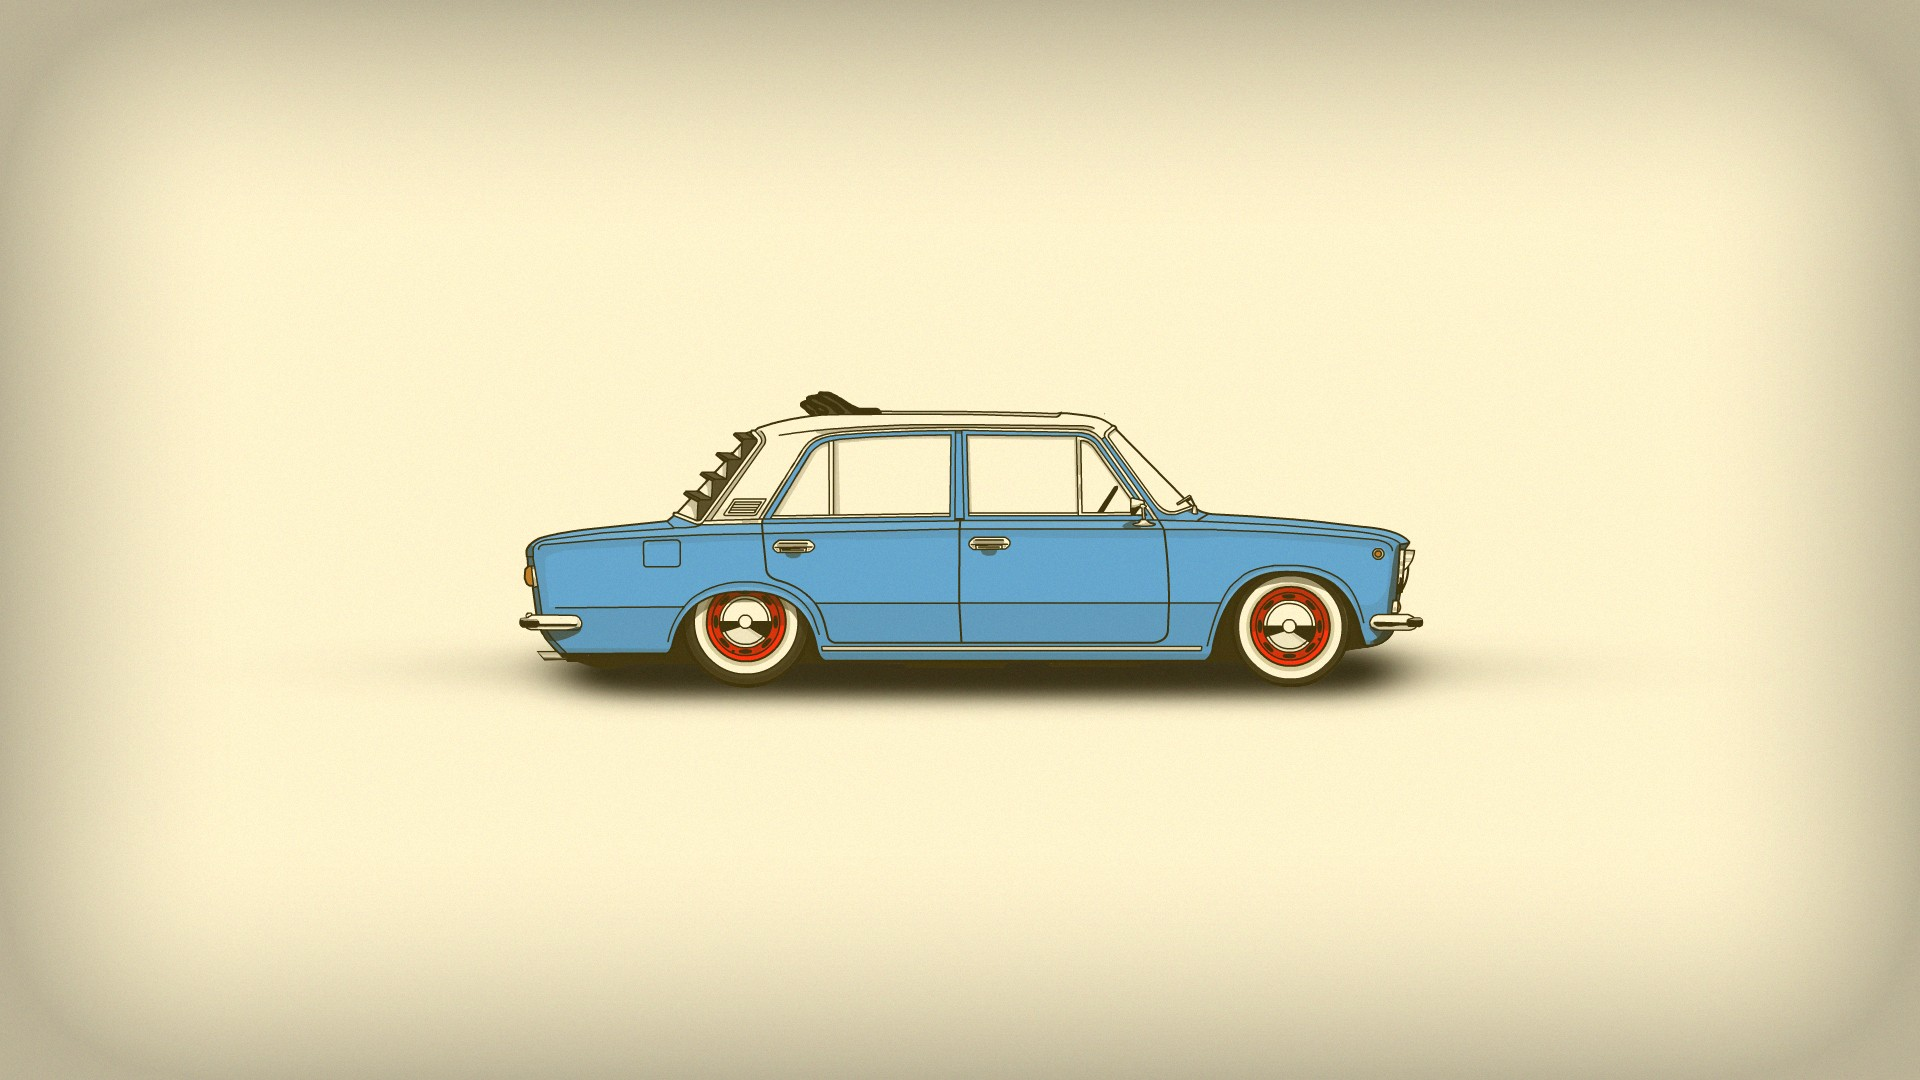 Car Minimalism Simple Art Hd Artist 4k Wallpapers